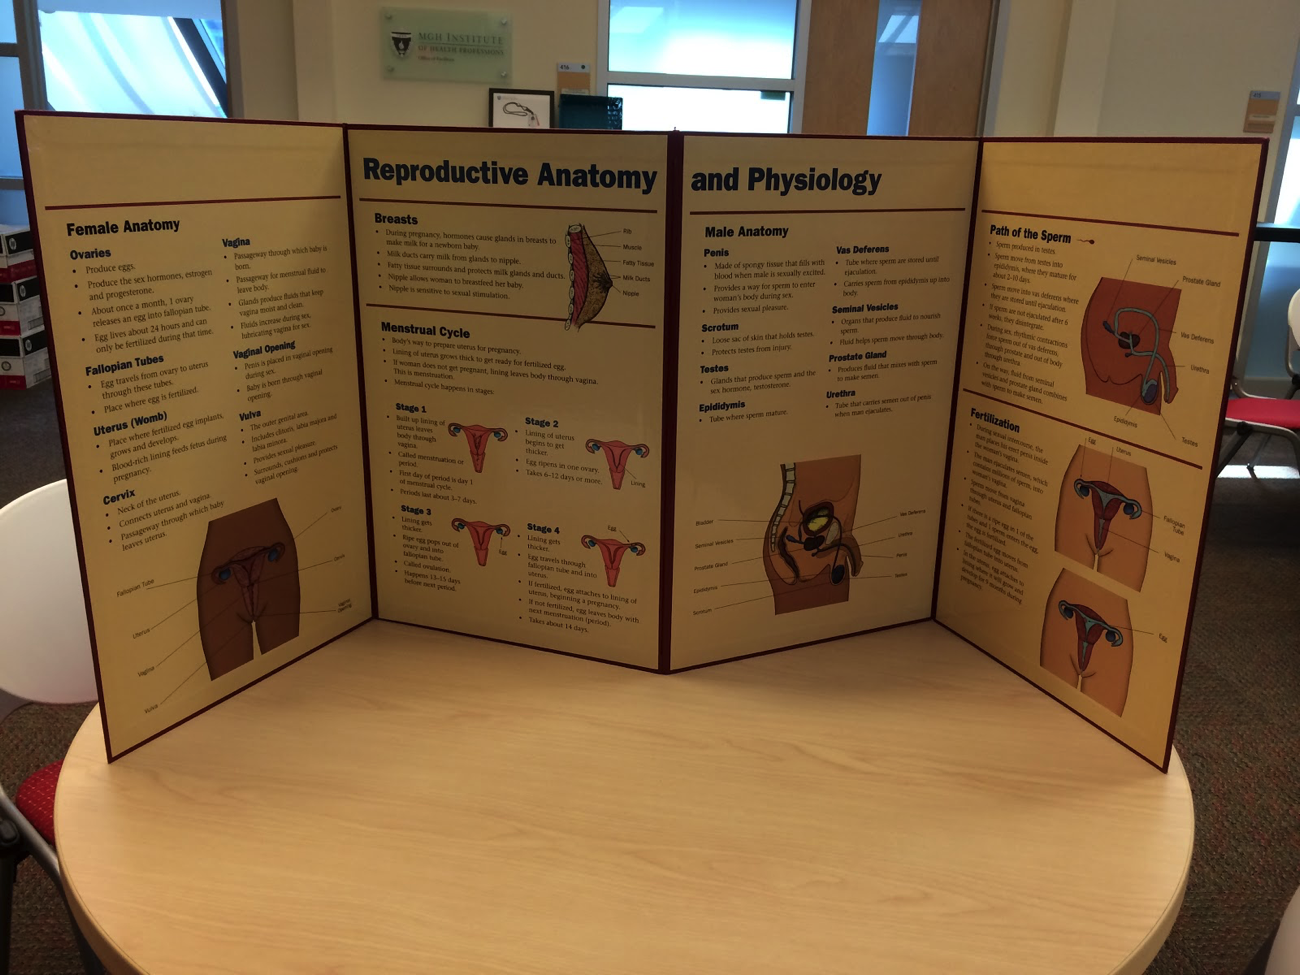 B22 Poster, a 4-fold poster that stands up on its own, showing reproductive anatomy and physiology